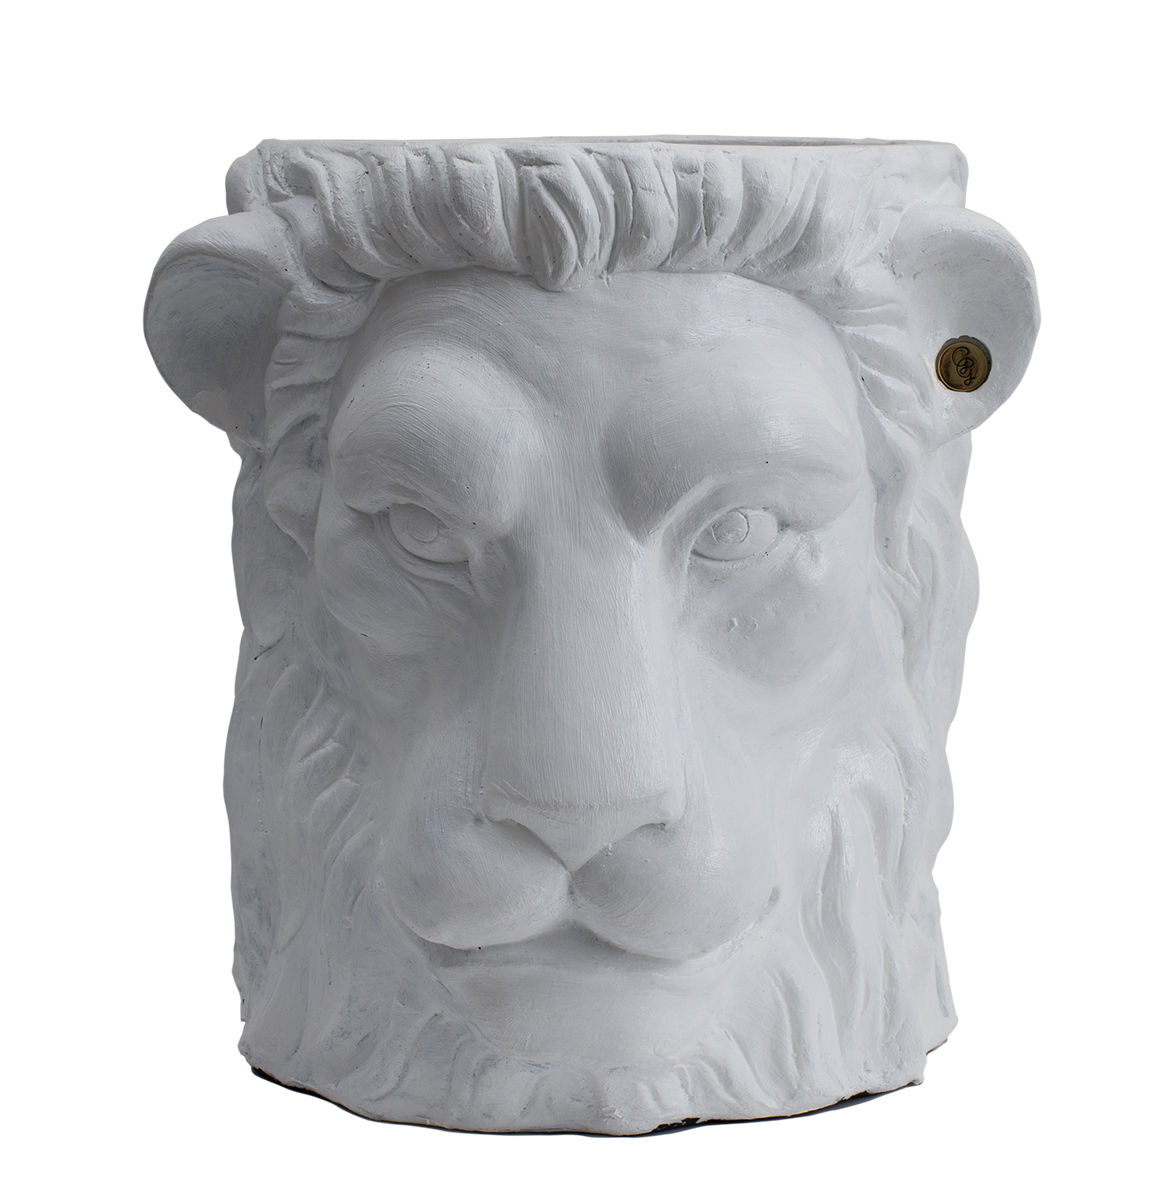 Outdoor - Pots & Plants - Lion Large Flowerpot - / Outdoor - H 40 cm by Garden Glory - White / brass - Brass, Painted terracotta